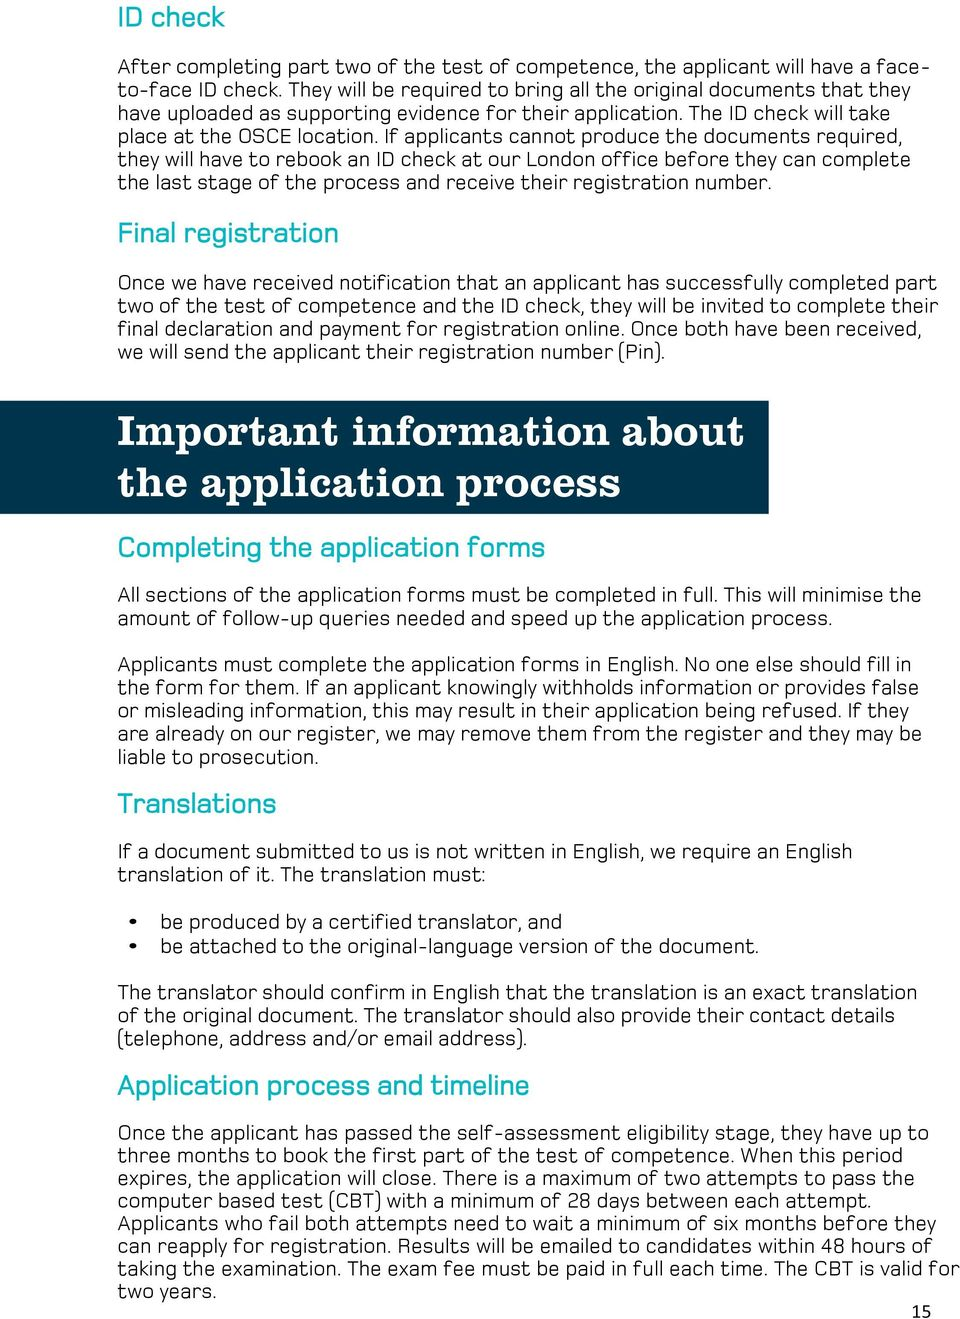 If applicants cannot produce the documents required, they will have to rebook an ID check at our London office before they can complete the last stage of the process and receive their registration